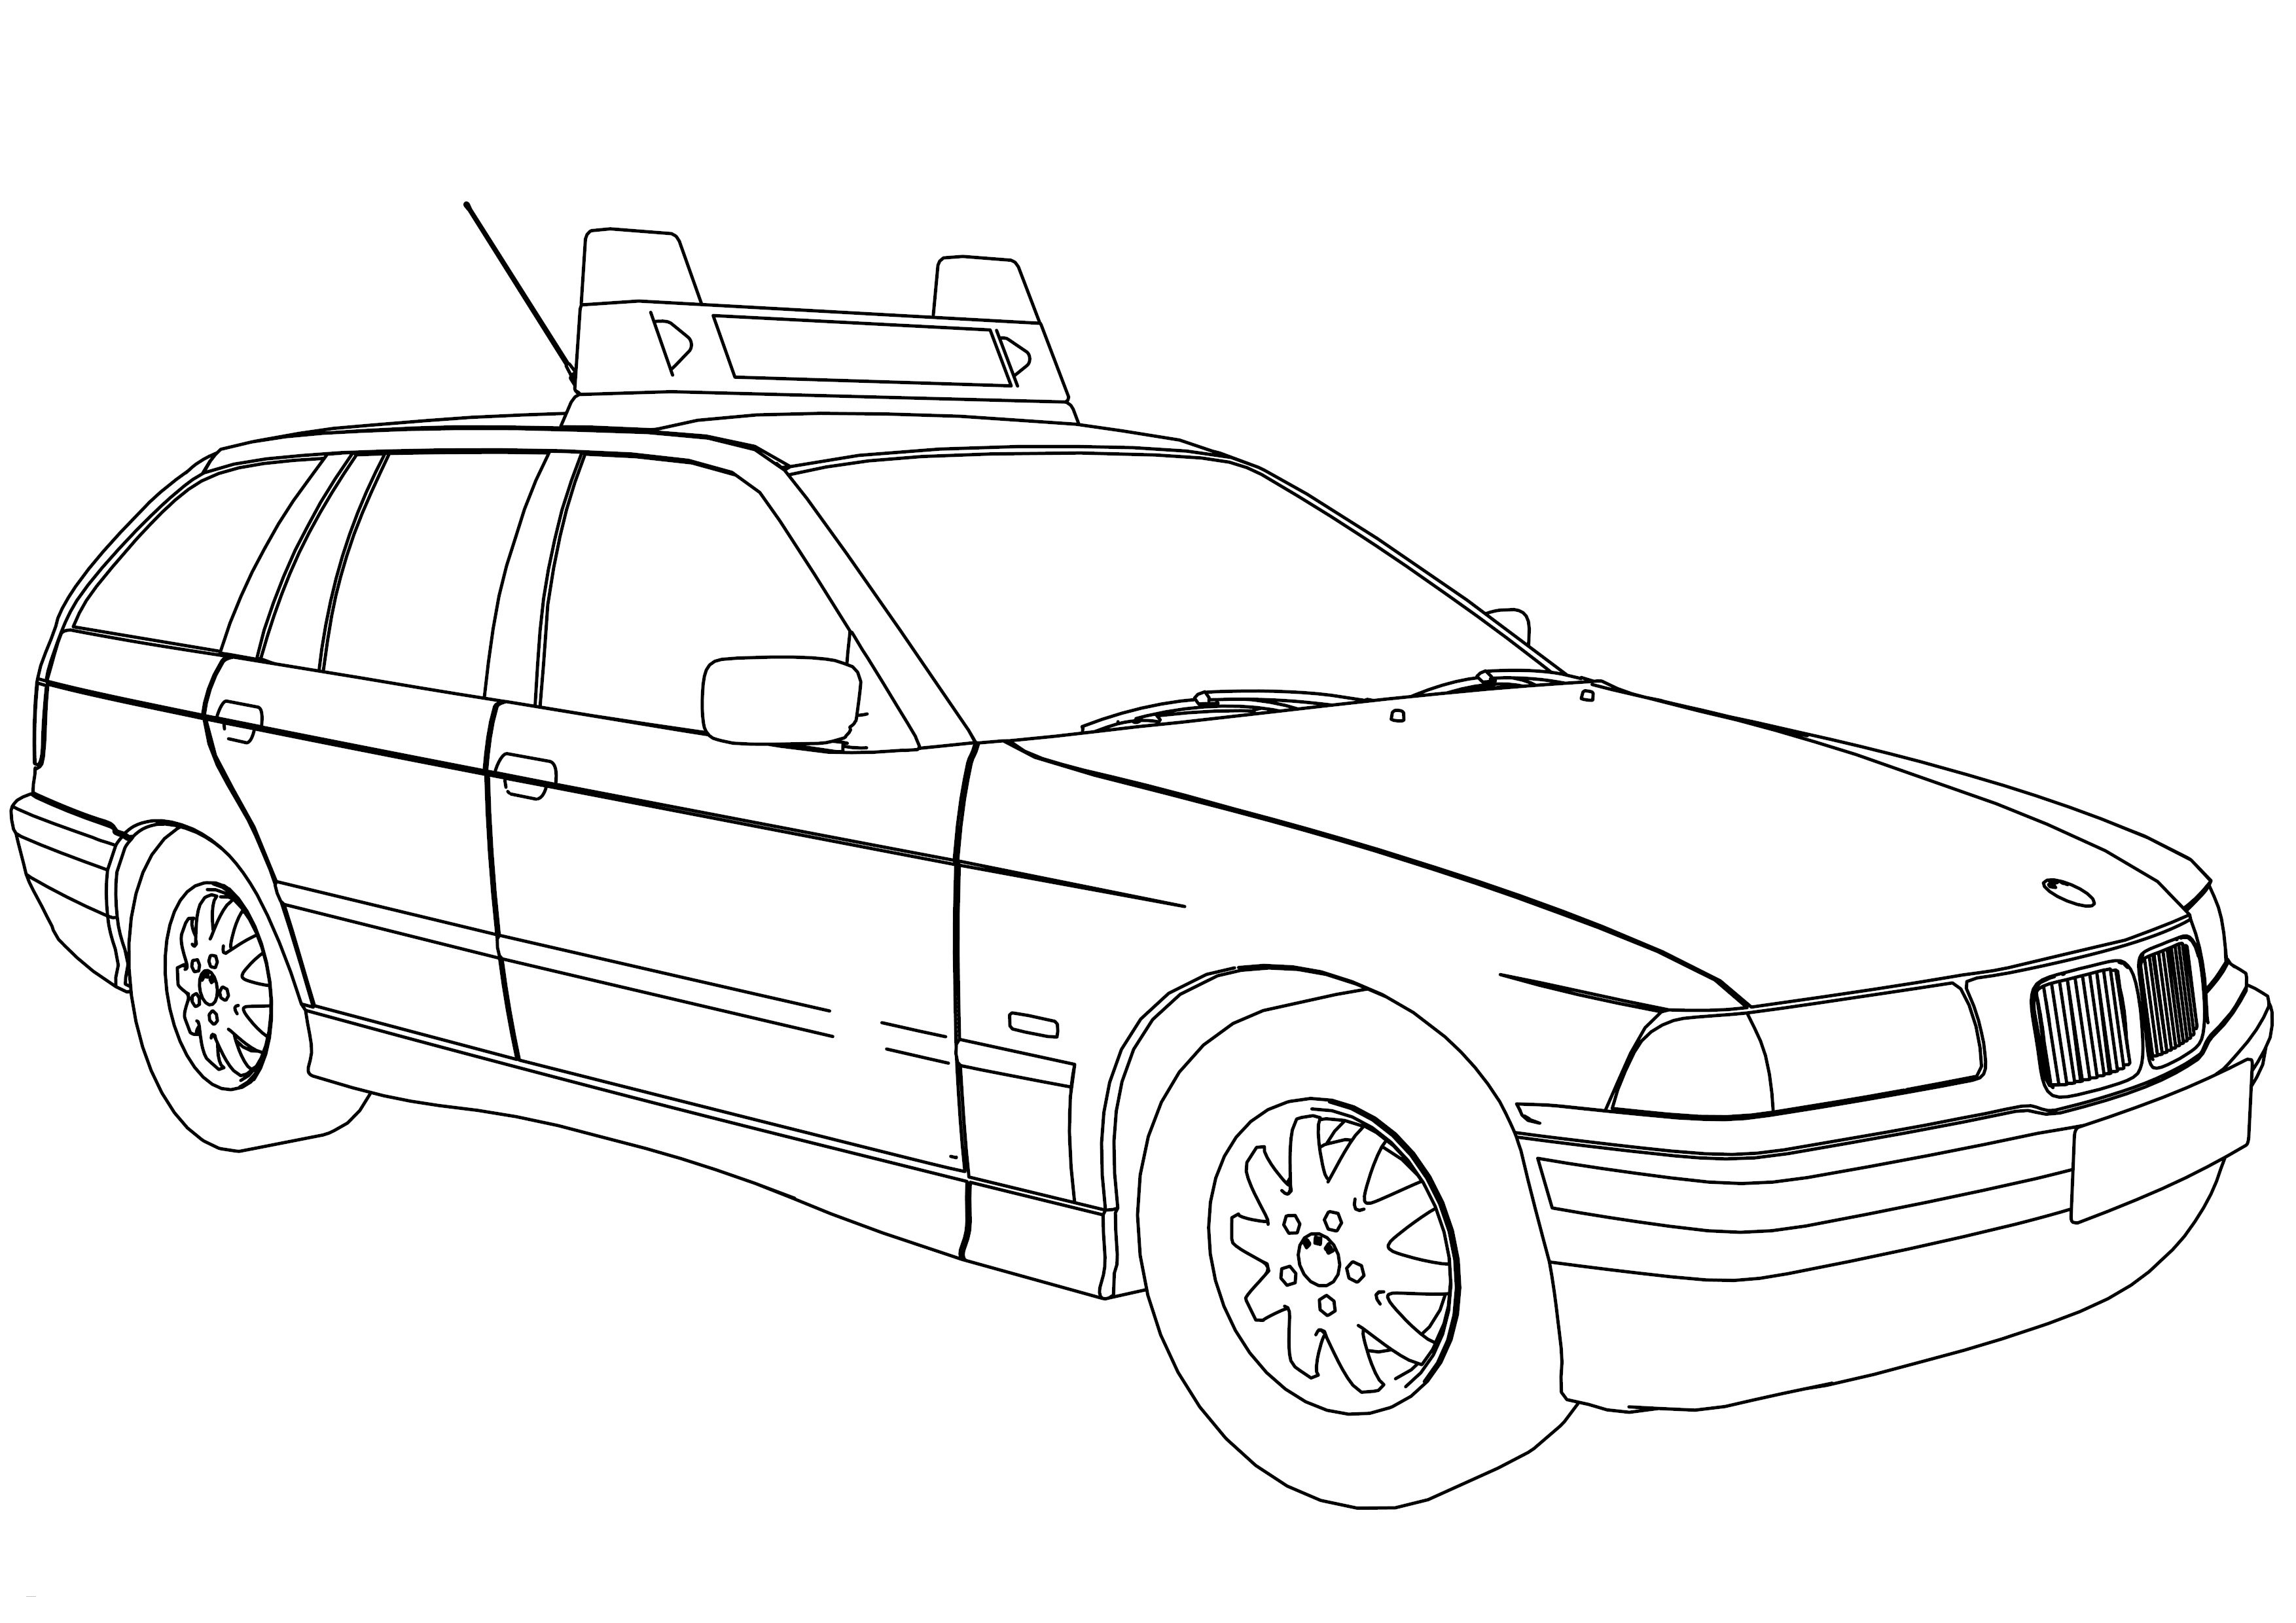 3508x2480 Vehicle Accident Report Diagram Free Download Police Car Drawing